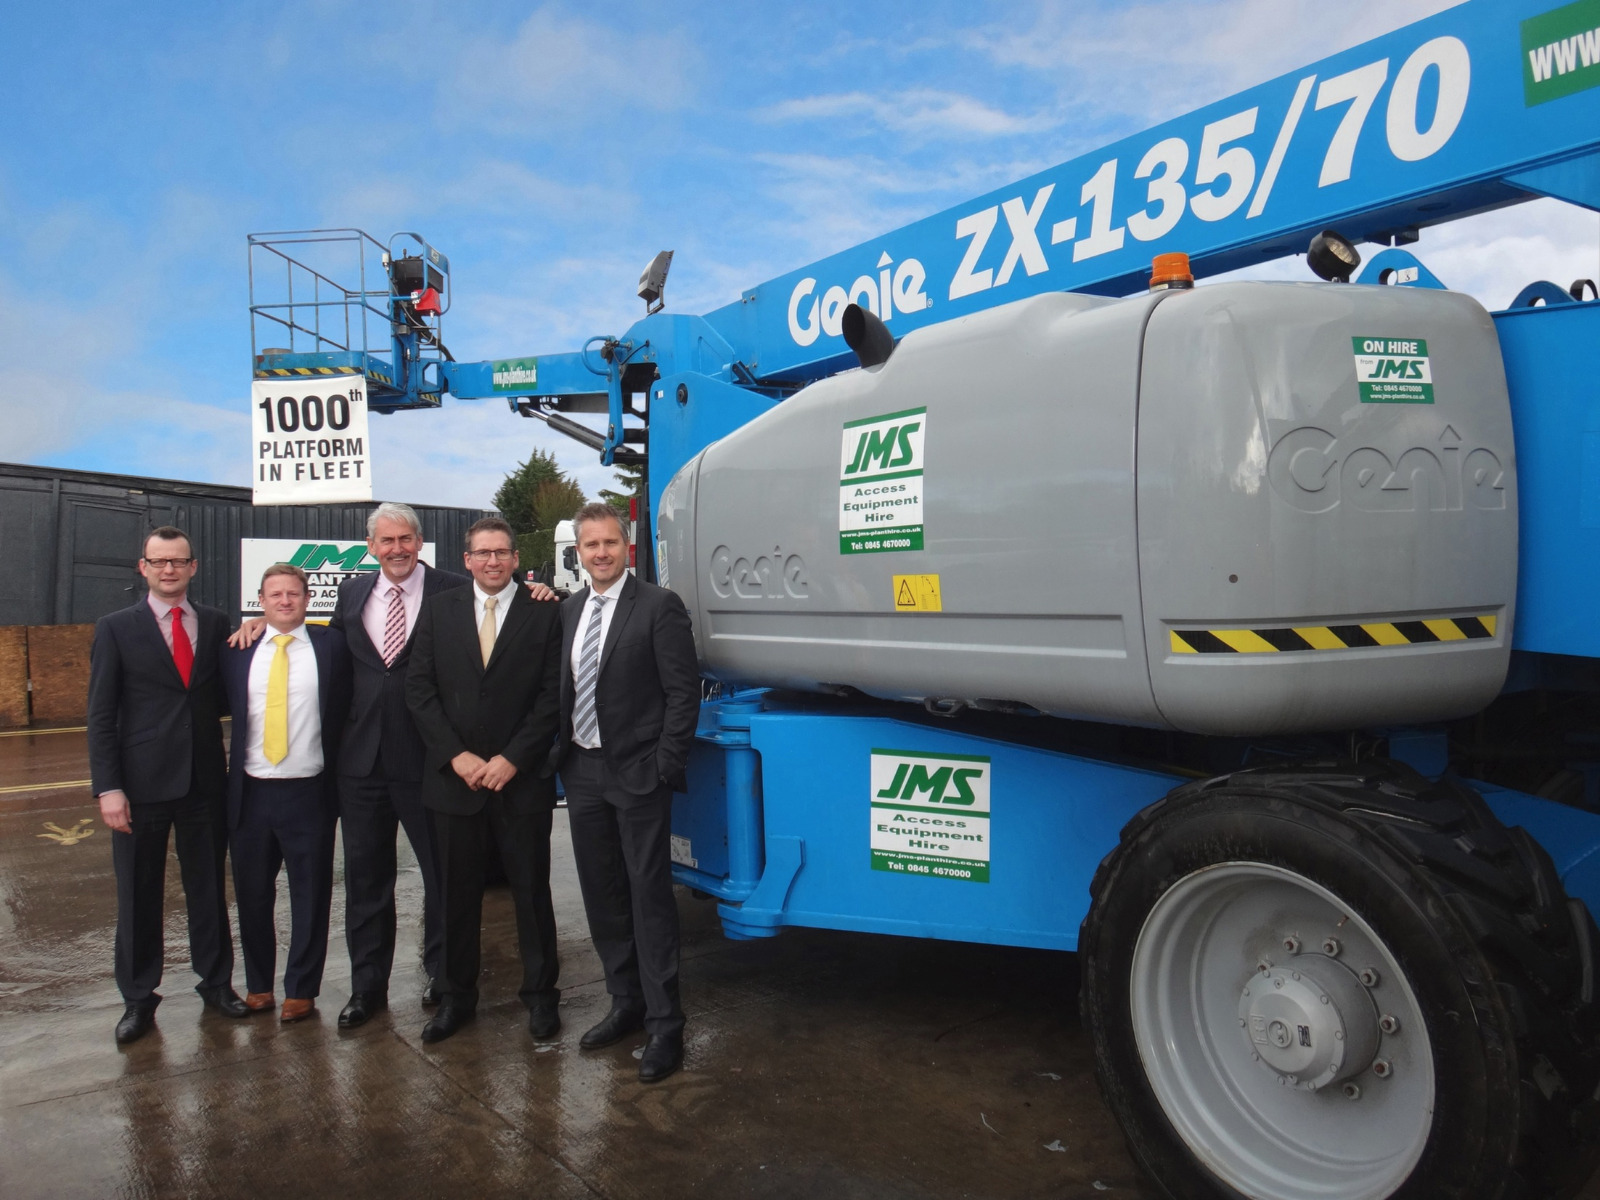 Jim, centre, hands over a boom to JMS Access